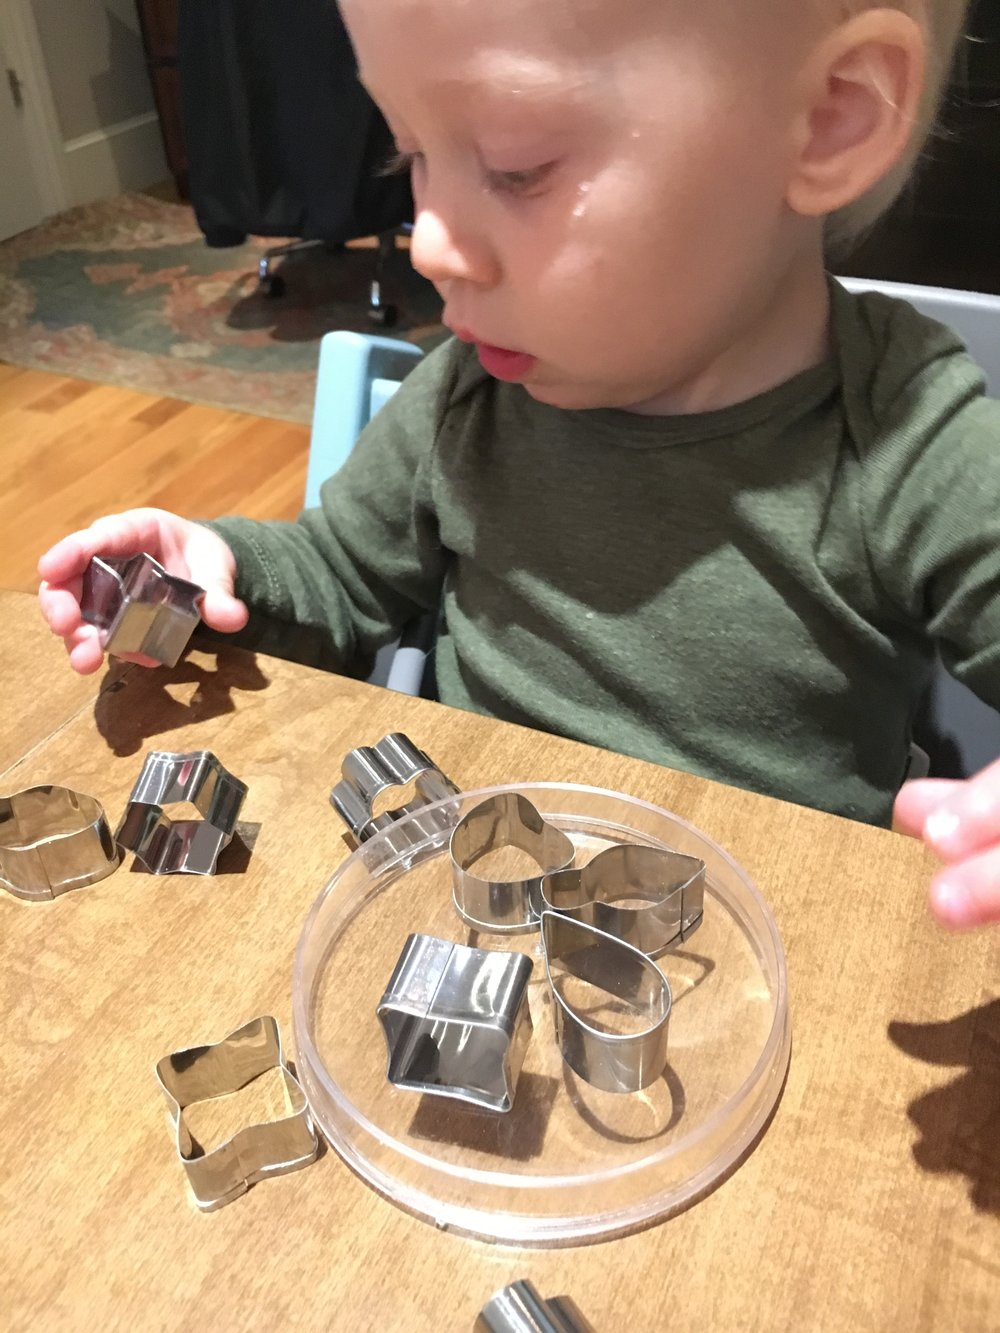 Choosing a cookie cutter is hard work!